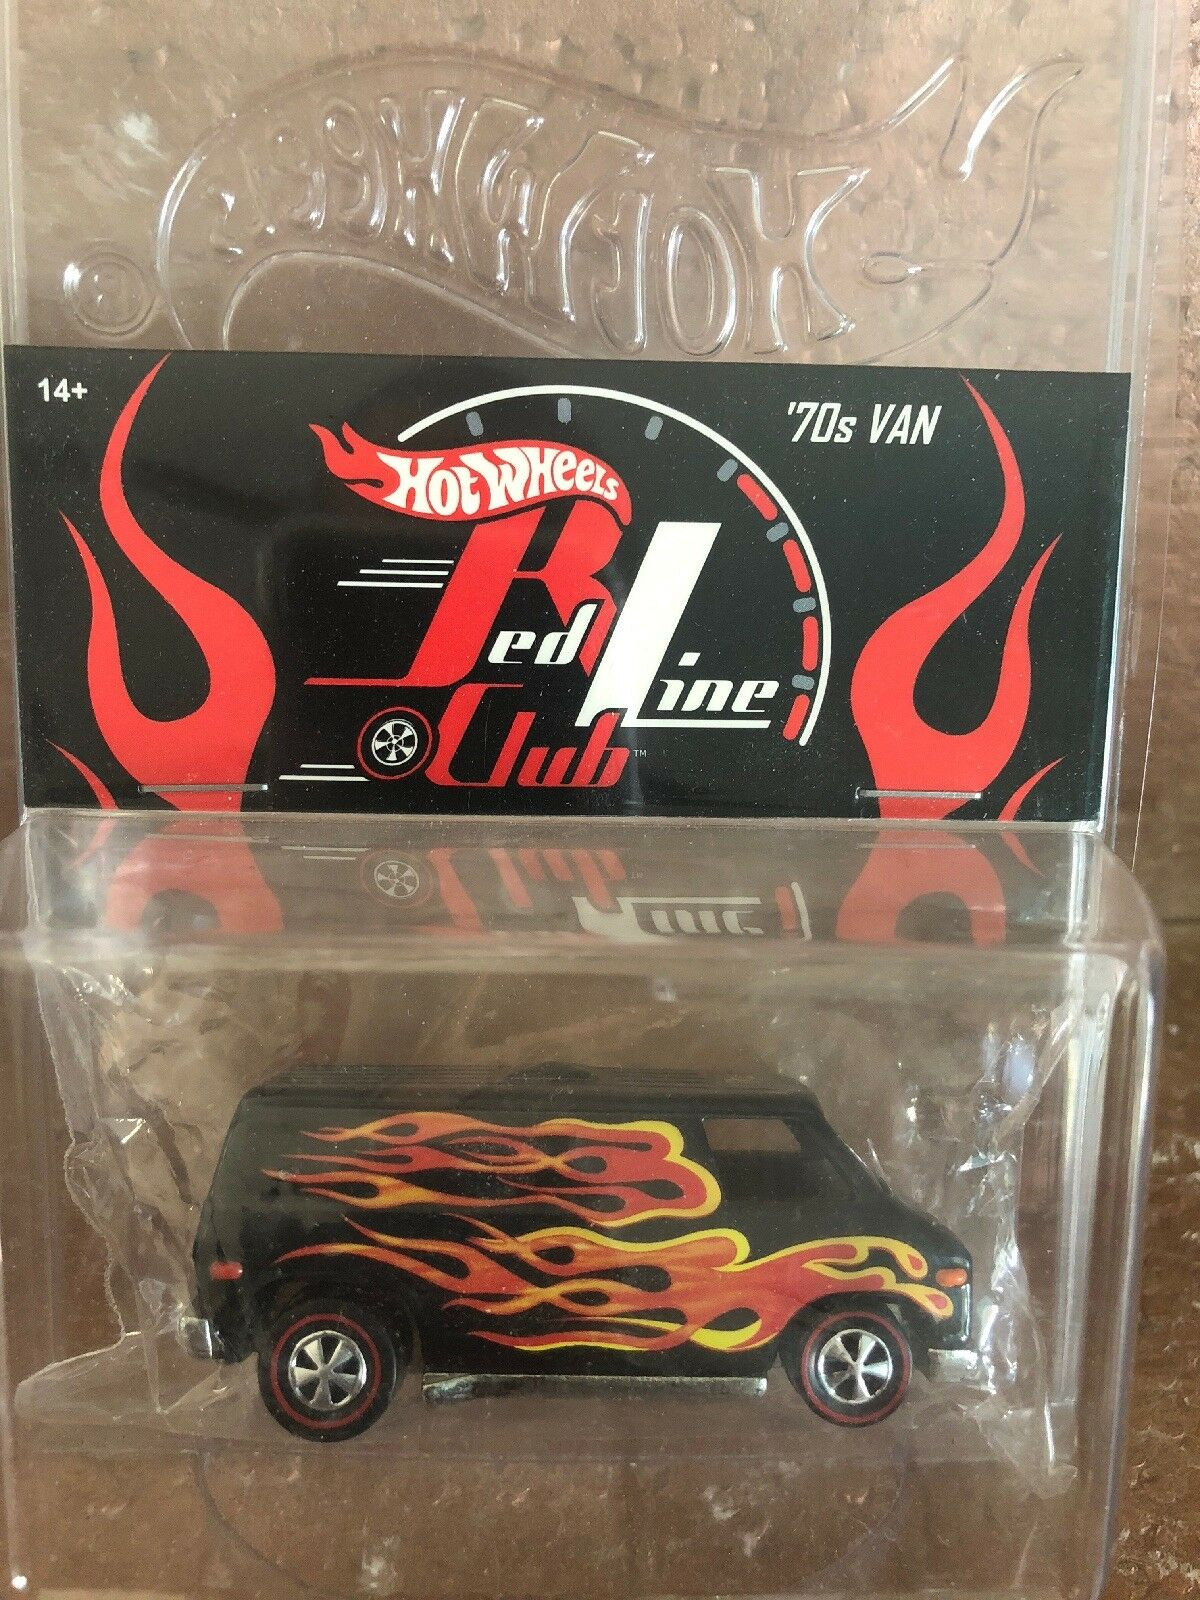 2003 Hot Wheels CONVENTION RLC Red Line Club non PINK PARTY CAR 70's Van SUPER